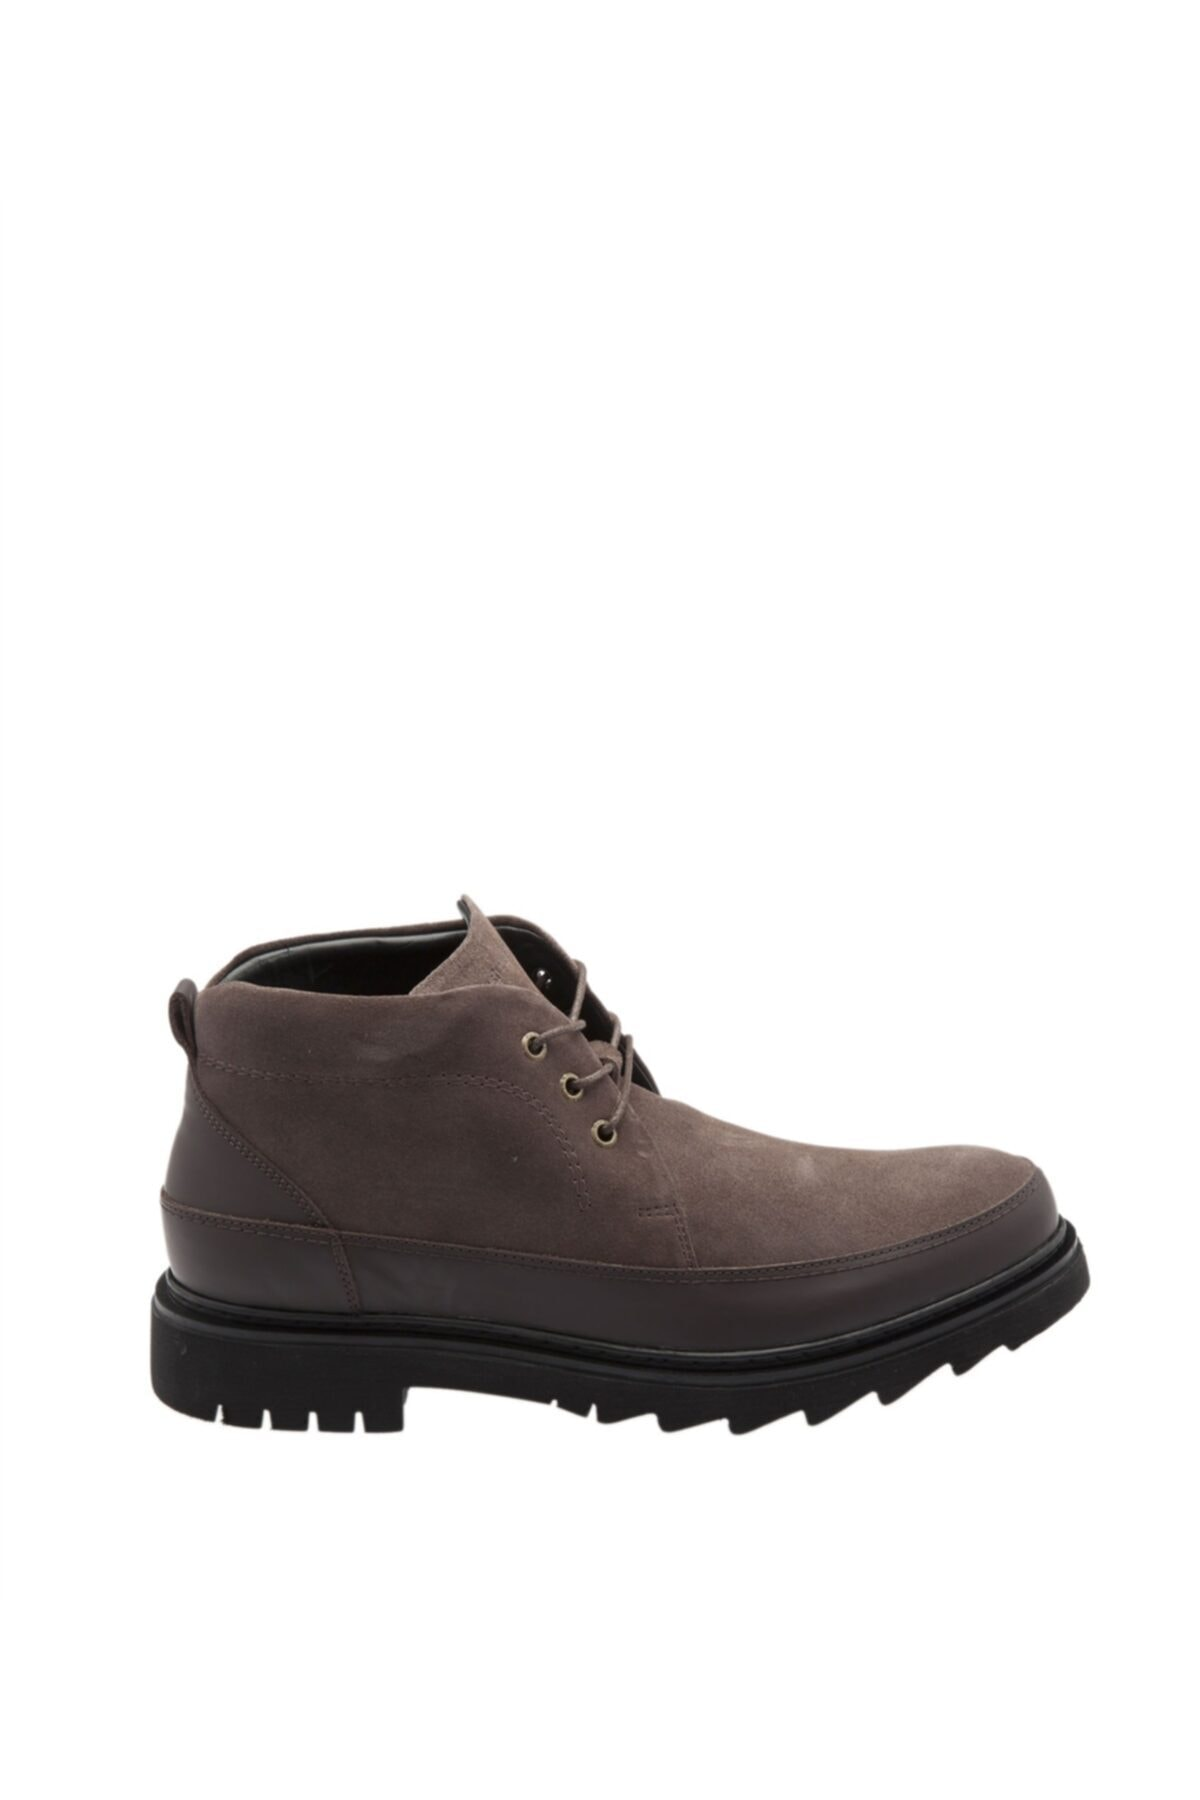 Hush Puppies Steve Roadsıde Erkek Gri Bot 1